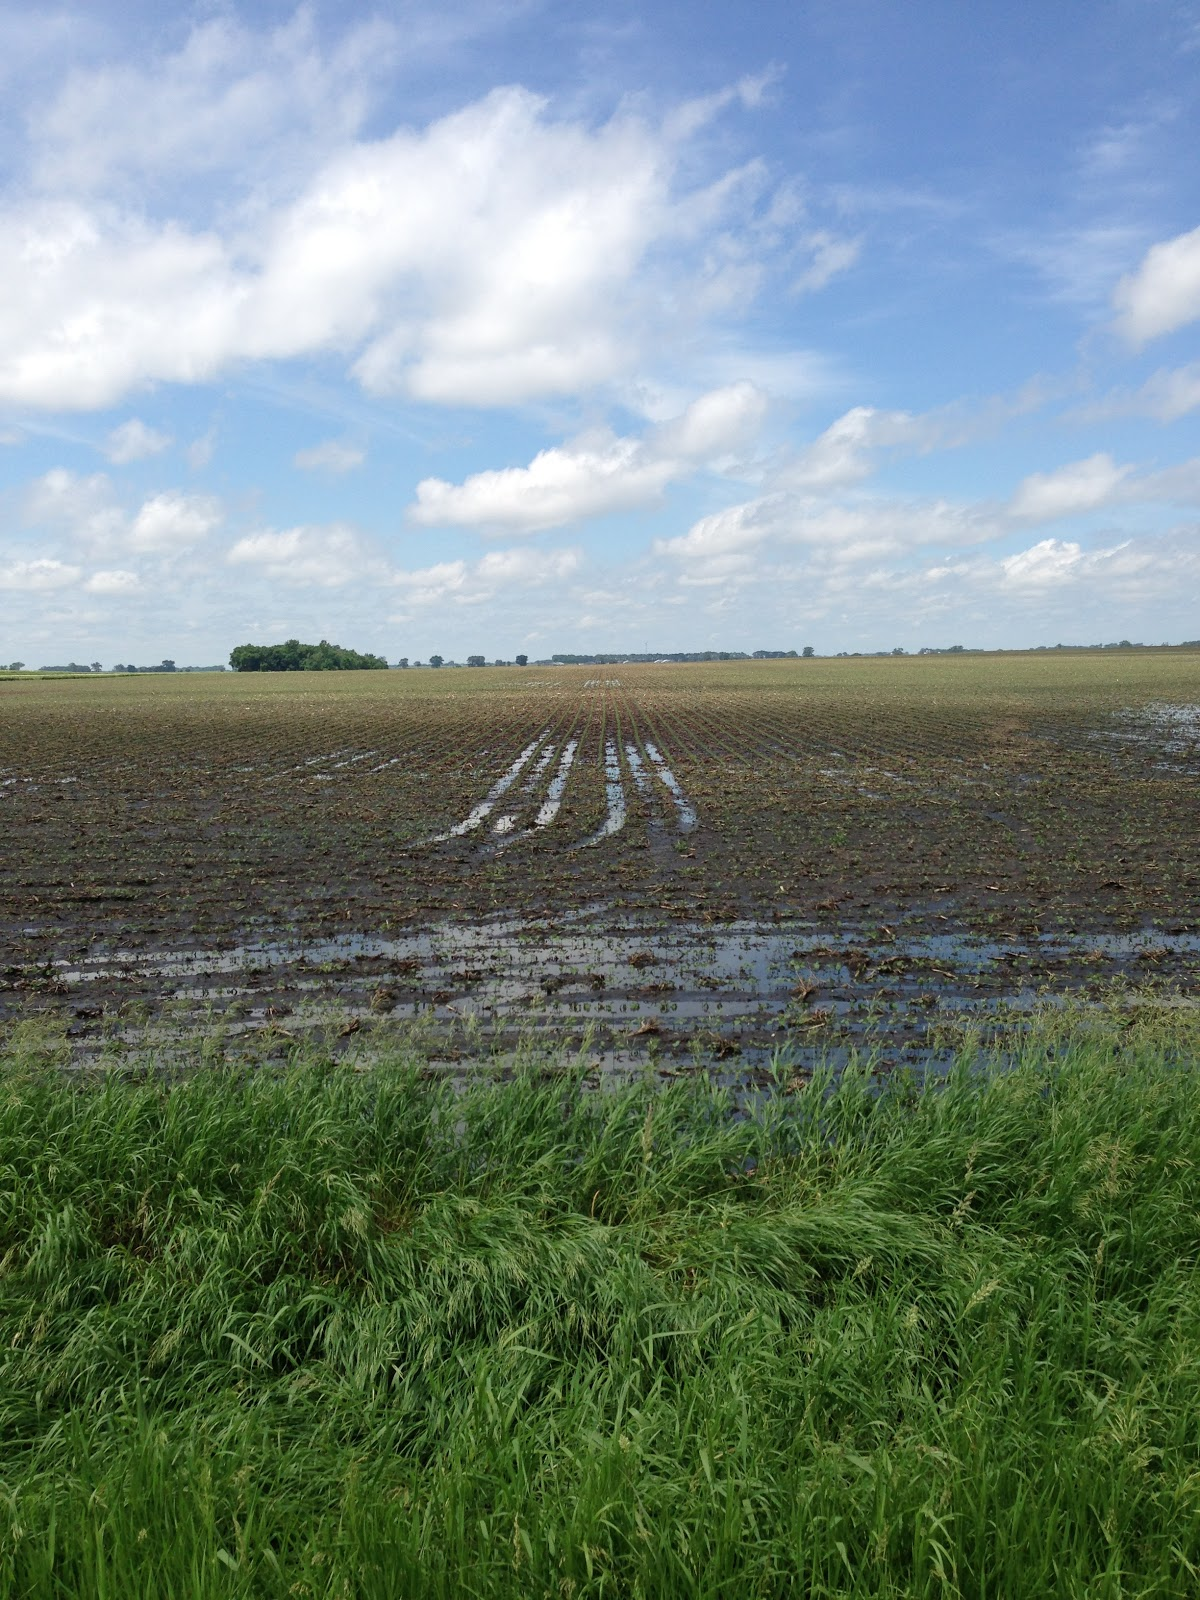 young farm crop with standing water in wheel tracks.